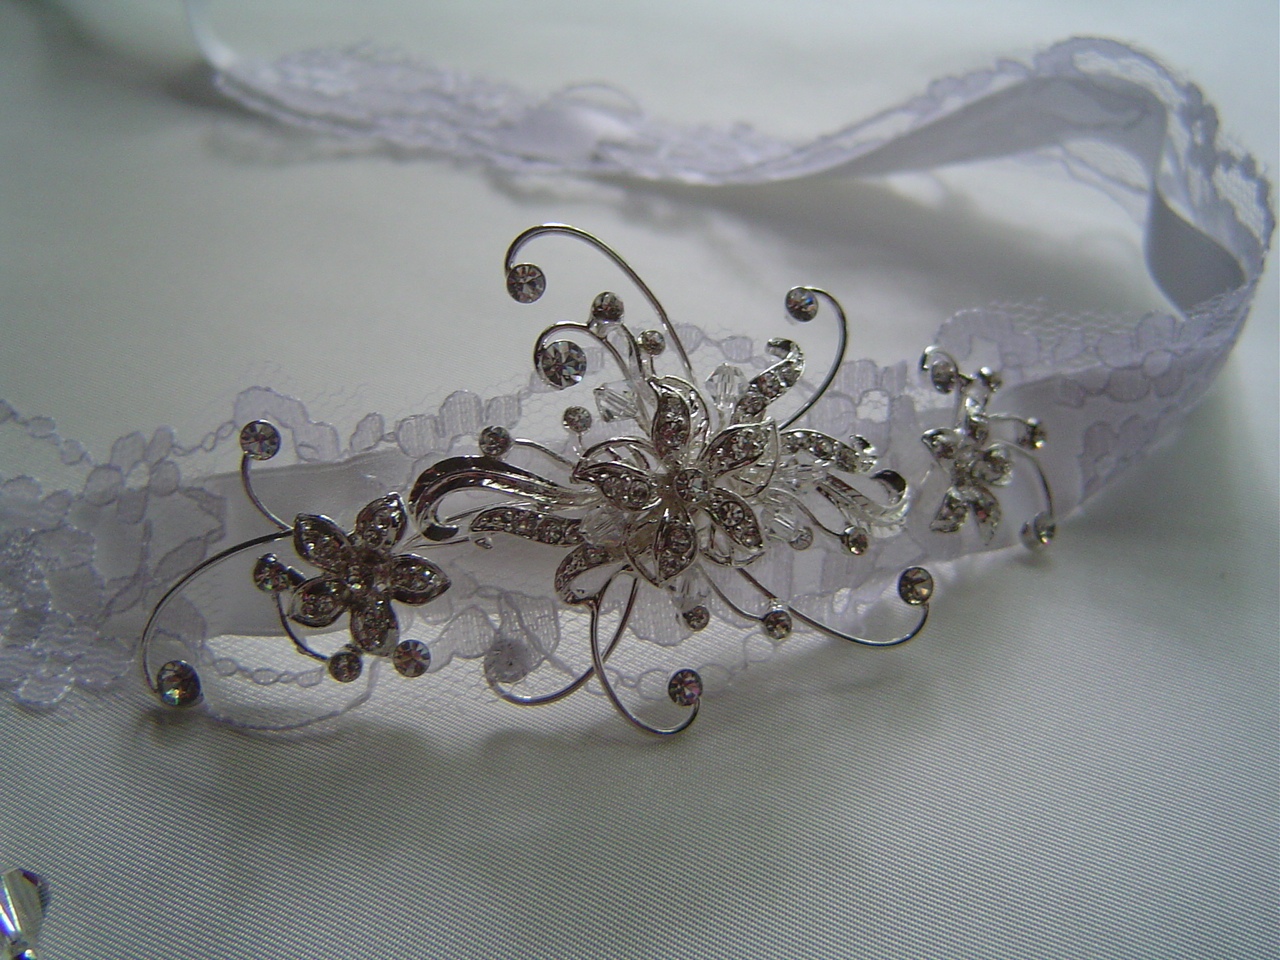 Beauty, Flowers & Decor, Jewelry, Wedding Dresses, Lace Wedding Dresses, Fashion, white, silver, dress, Tiaras, Headbands, Flowers, Hair, Bridal, Tiara, Lace, Ribbon, Rhinestone, Headband, Bridalbling, Flower Wedding Dresses